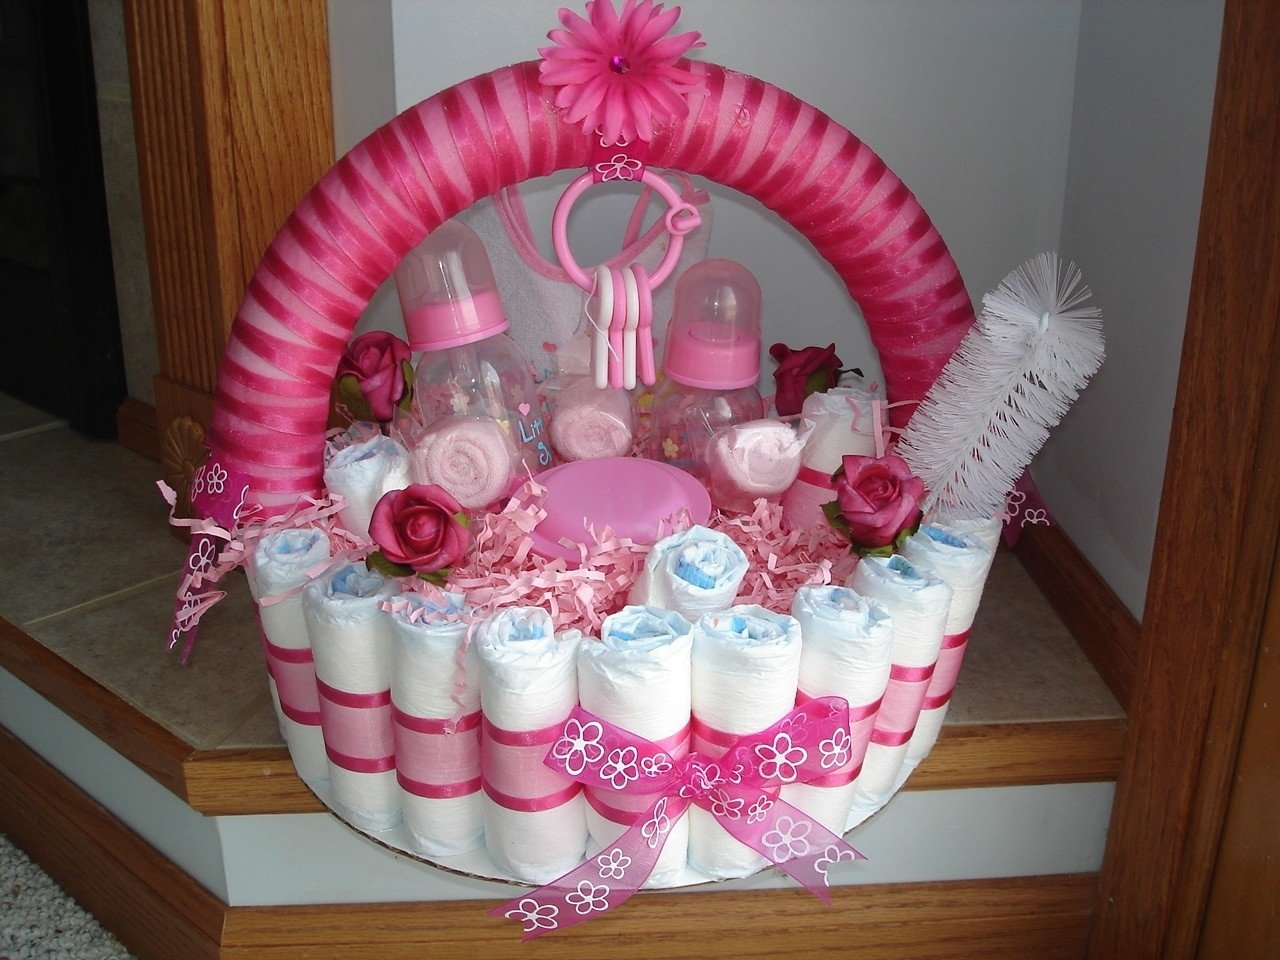 10 Amazing Diy Baby Shower Gift Ideas diy baby shower gift ideas pink baskets baby shower ideas gallery 2020